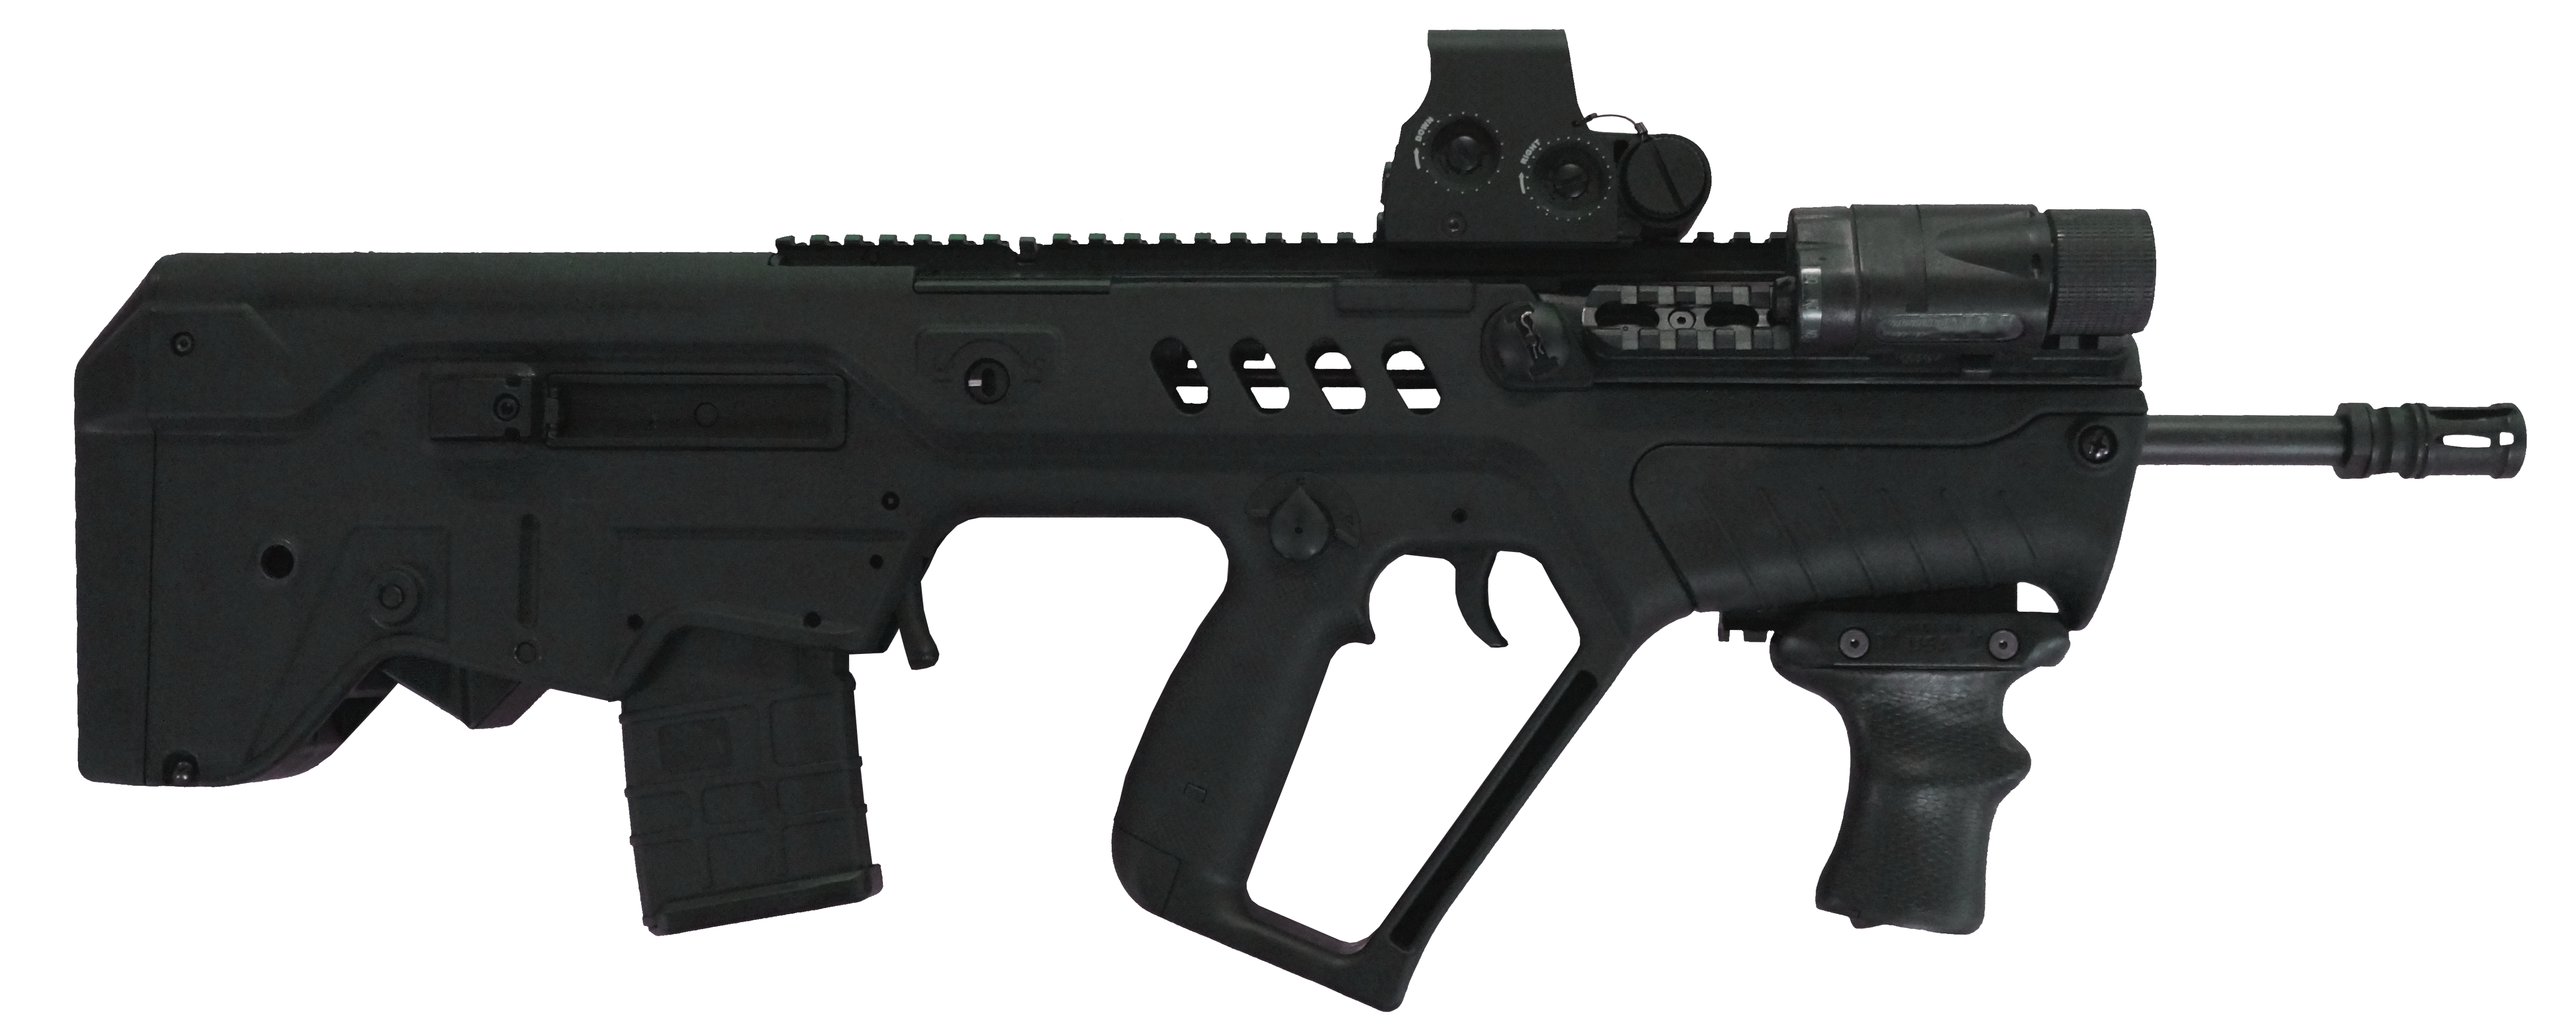 American Built Arms Introduces the A*B Arms T*Grip for the